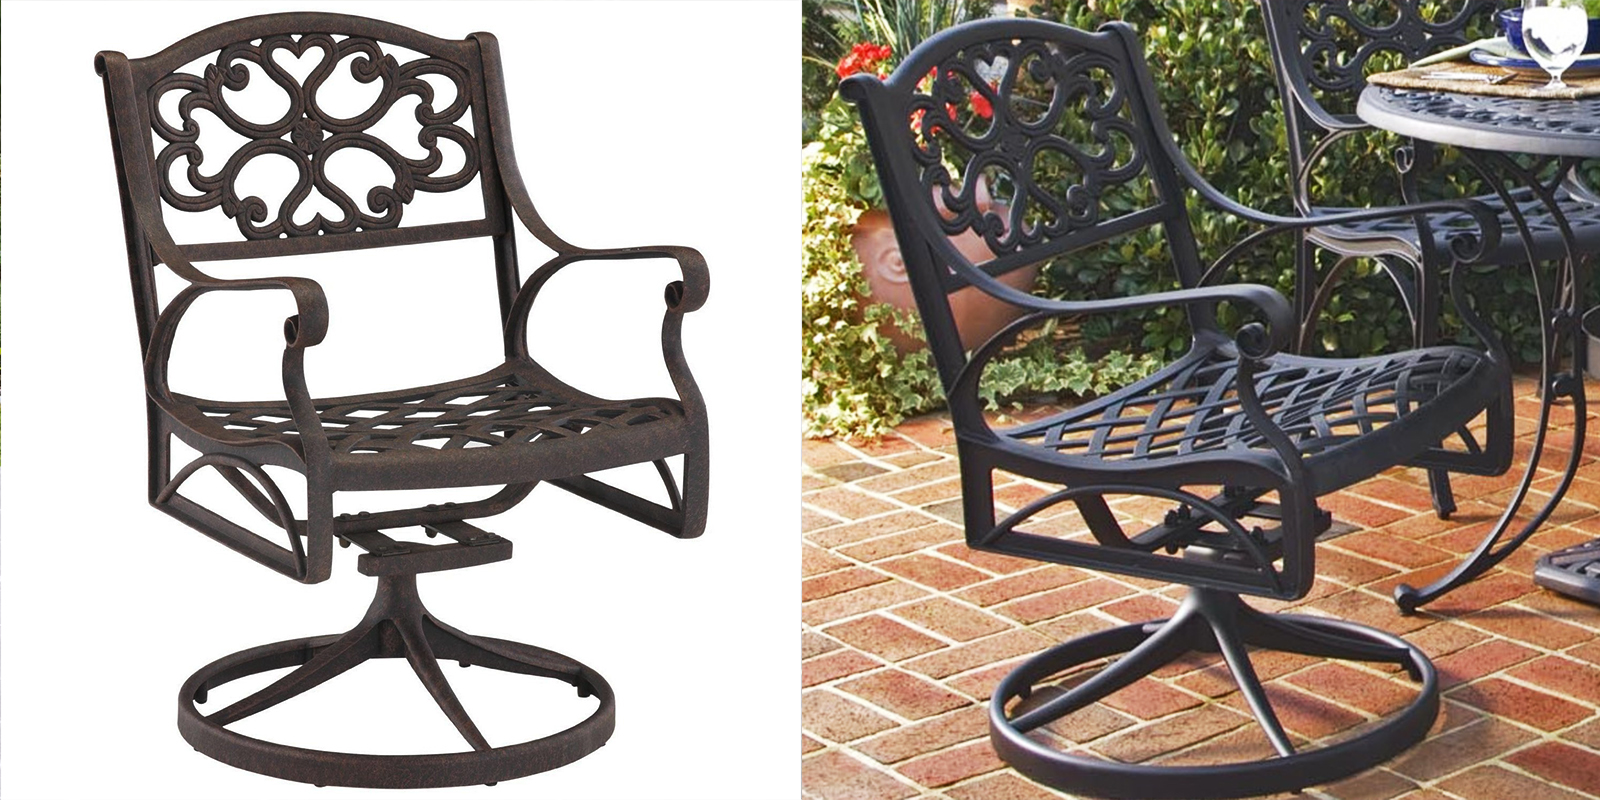 Patio Chair - Swivel-Rocking Arm Chair